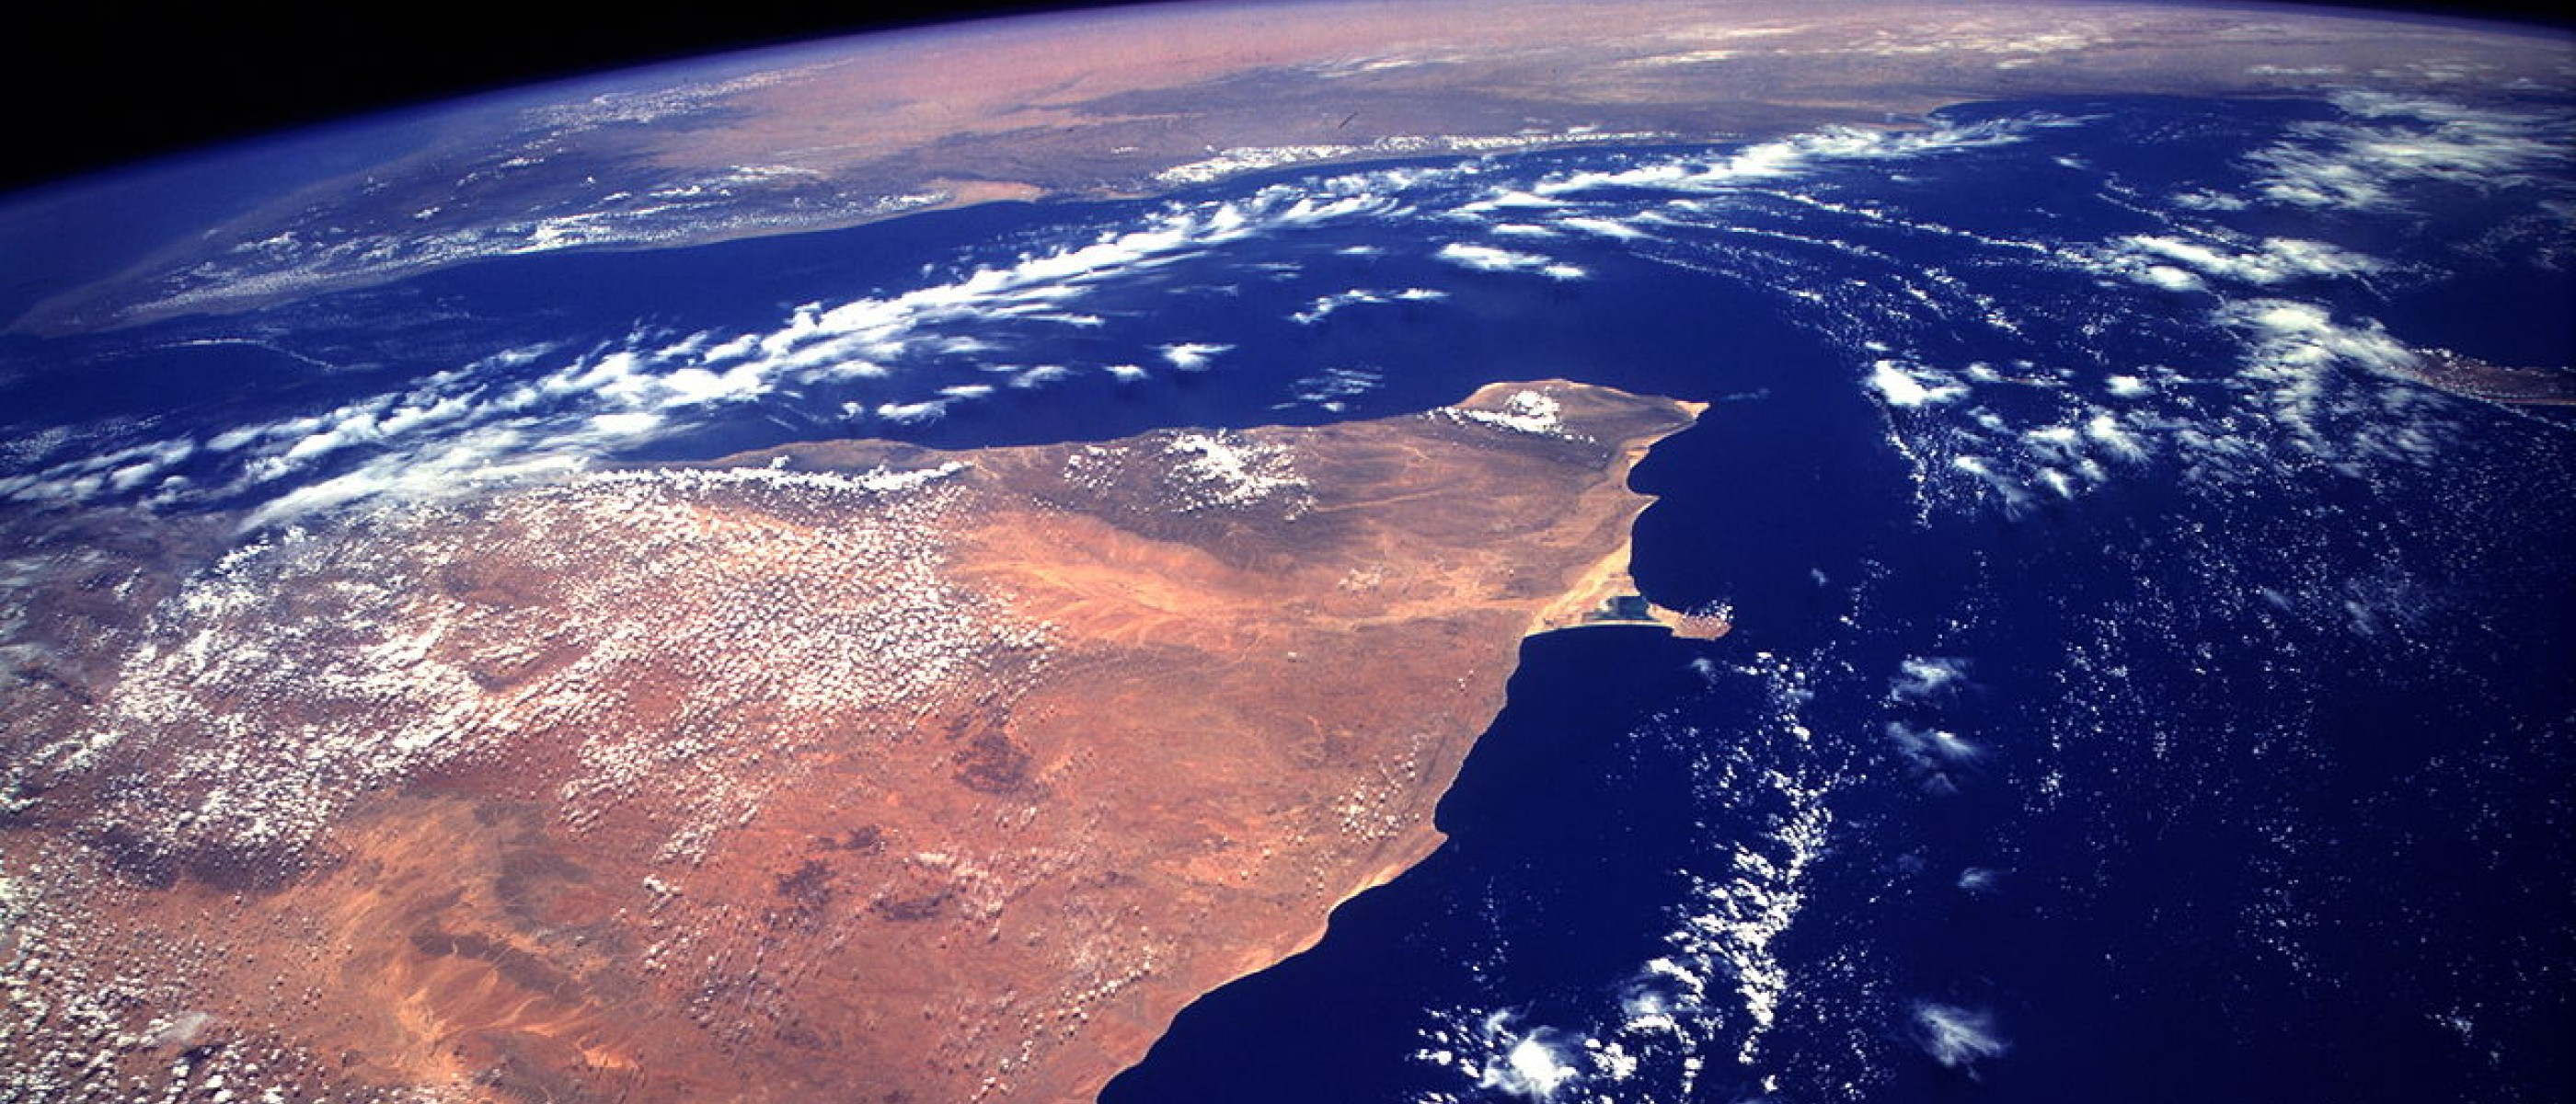 Middle Eastern States in the Horn of Africa: Security